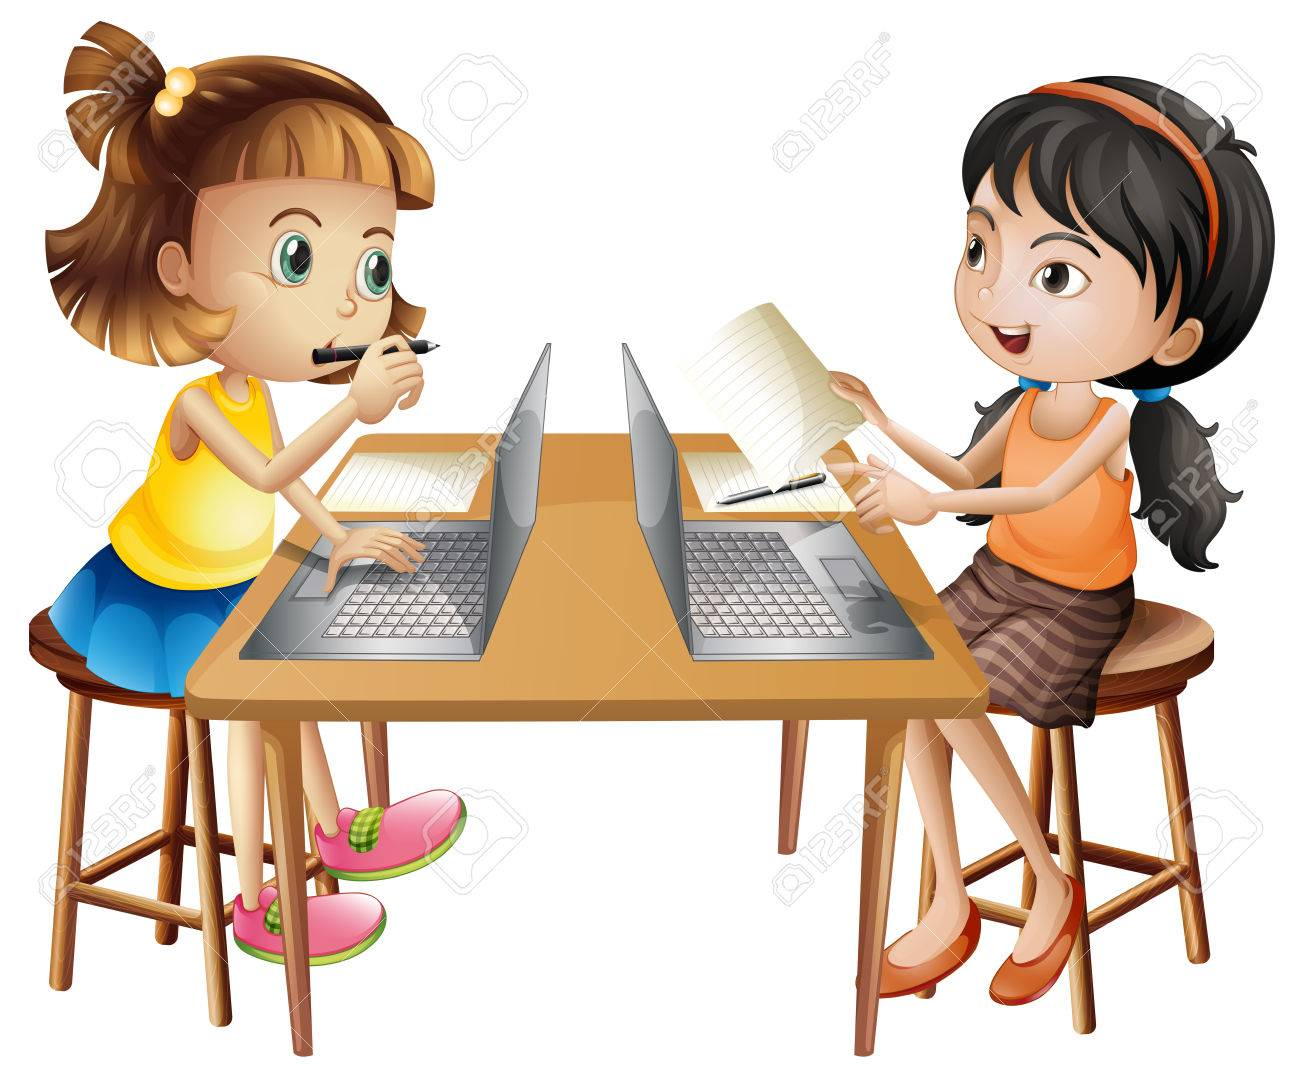 Two girls working on computer illustration.